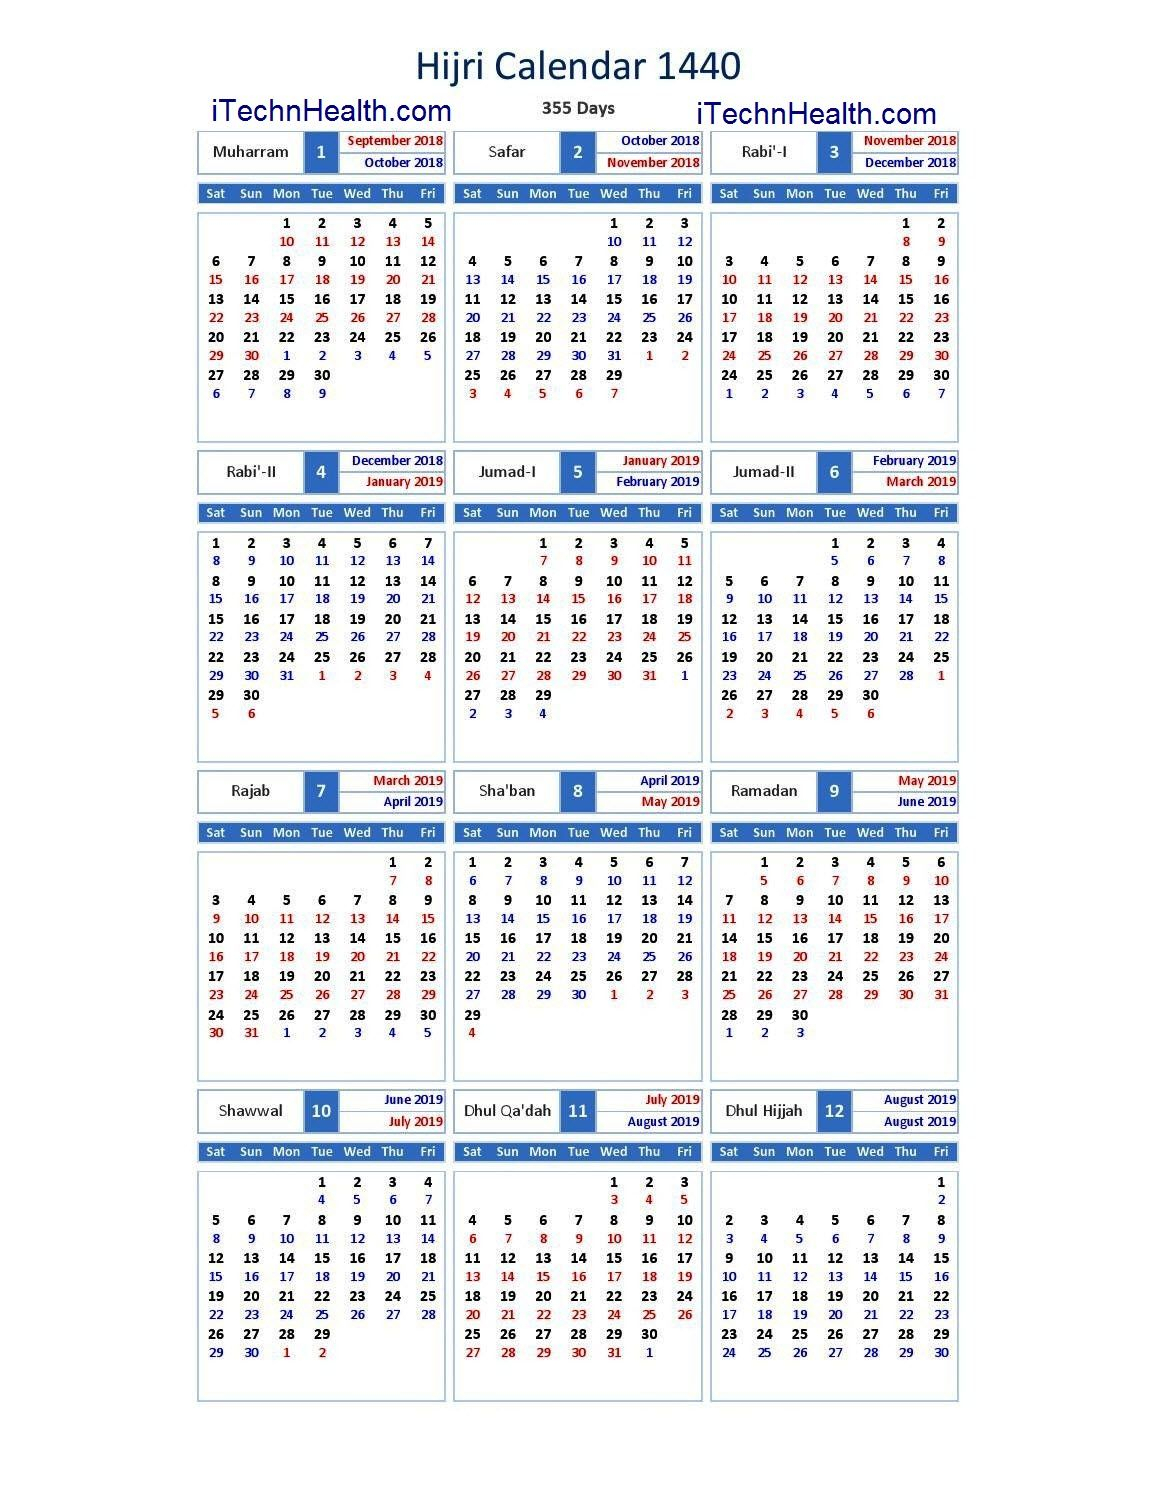 Download Calendar 2019 And Islamic Calendar 2019  1440 intended for 1440 Hijri Calendar